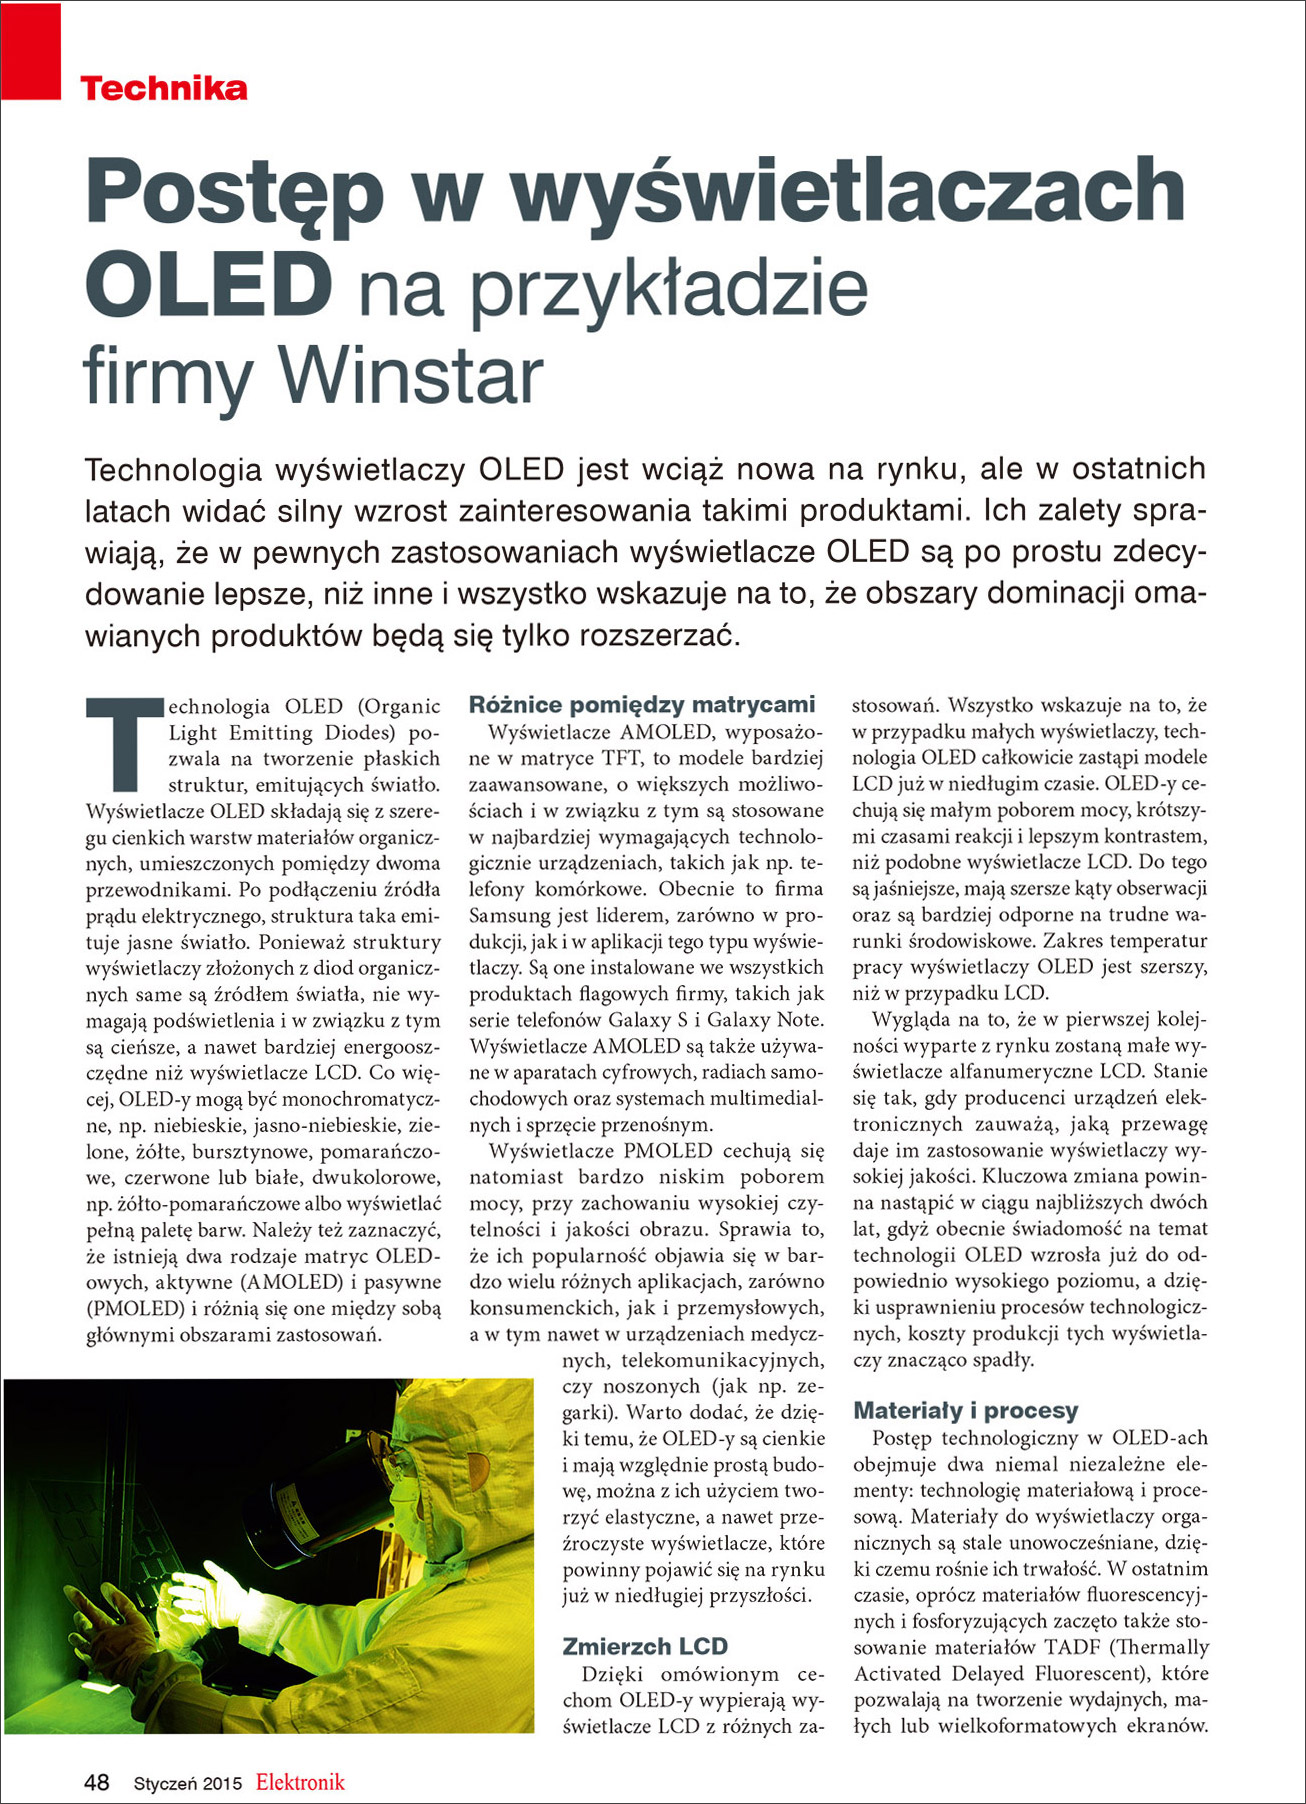 Elektronik Magazine - Publication Article (Winstar OLED) Page1